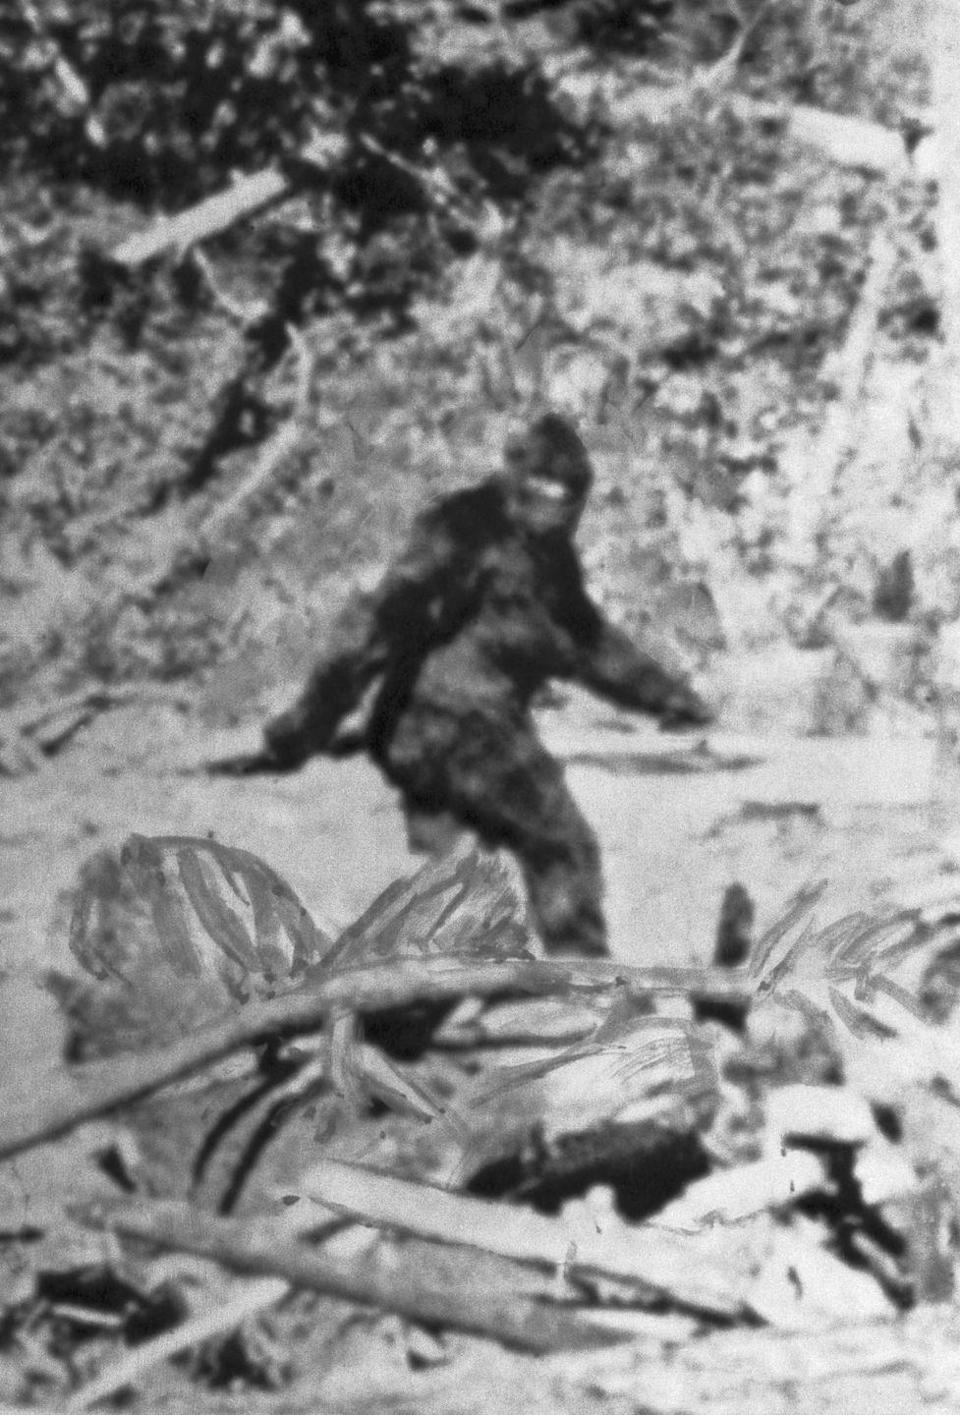 """<p>Apparently, the FBI really <em>does </em>have a file on everyone — including mystical creatures like Bigfoot (or Sasquatch). Deep within the FBI's Freedom of Information Library, you can track down the <a href=""""https://vault.fbi.gov/bigfoot/bigfoot-part-01-of-01/view"""" rel=""""nofollow noopener"""" target=""""_blank"""" data-ylk=""""slk:agency's file on Bigfoot"""" class=""""link rapid-noclick-resp"""">agency's file on Bigfoot</a>. Files are released only when <a href=""""https://www.popularmechanics.com/science/animals/a27758091/fbi-bigfoot-file/"""" rel=""""nofollow noopener"""" target=""""_blank"""" data-ylk=""""slk:a subject is deceased"""" class=""""link rapid-noclick-resp"""">a subject is deceased</a> — which not only points to the figure being real, but also suggests that the agency believes it is dead. </p>"""